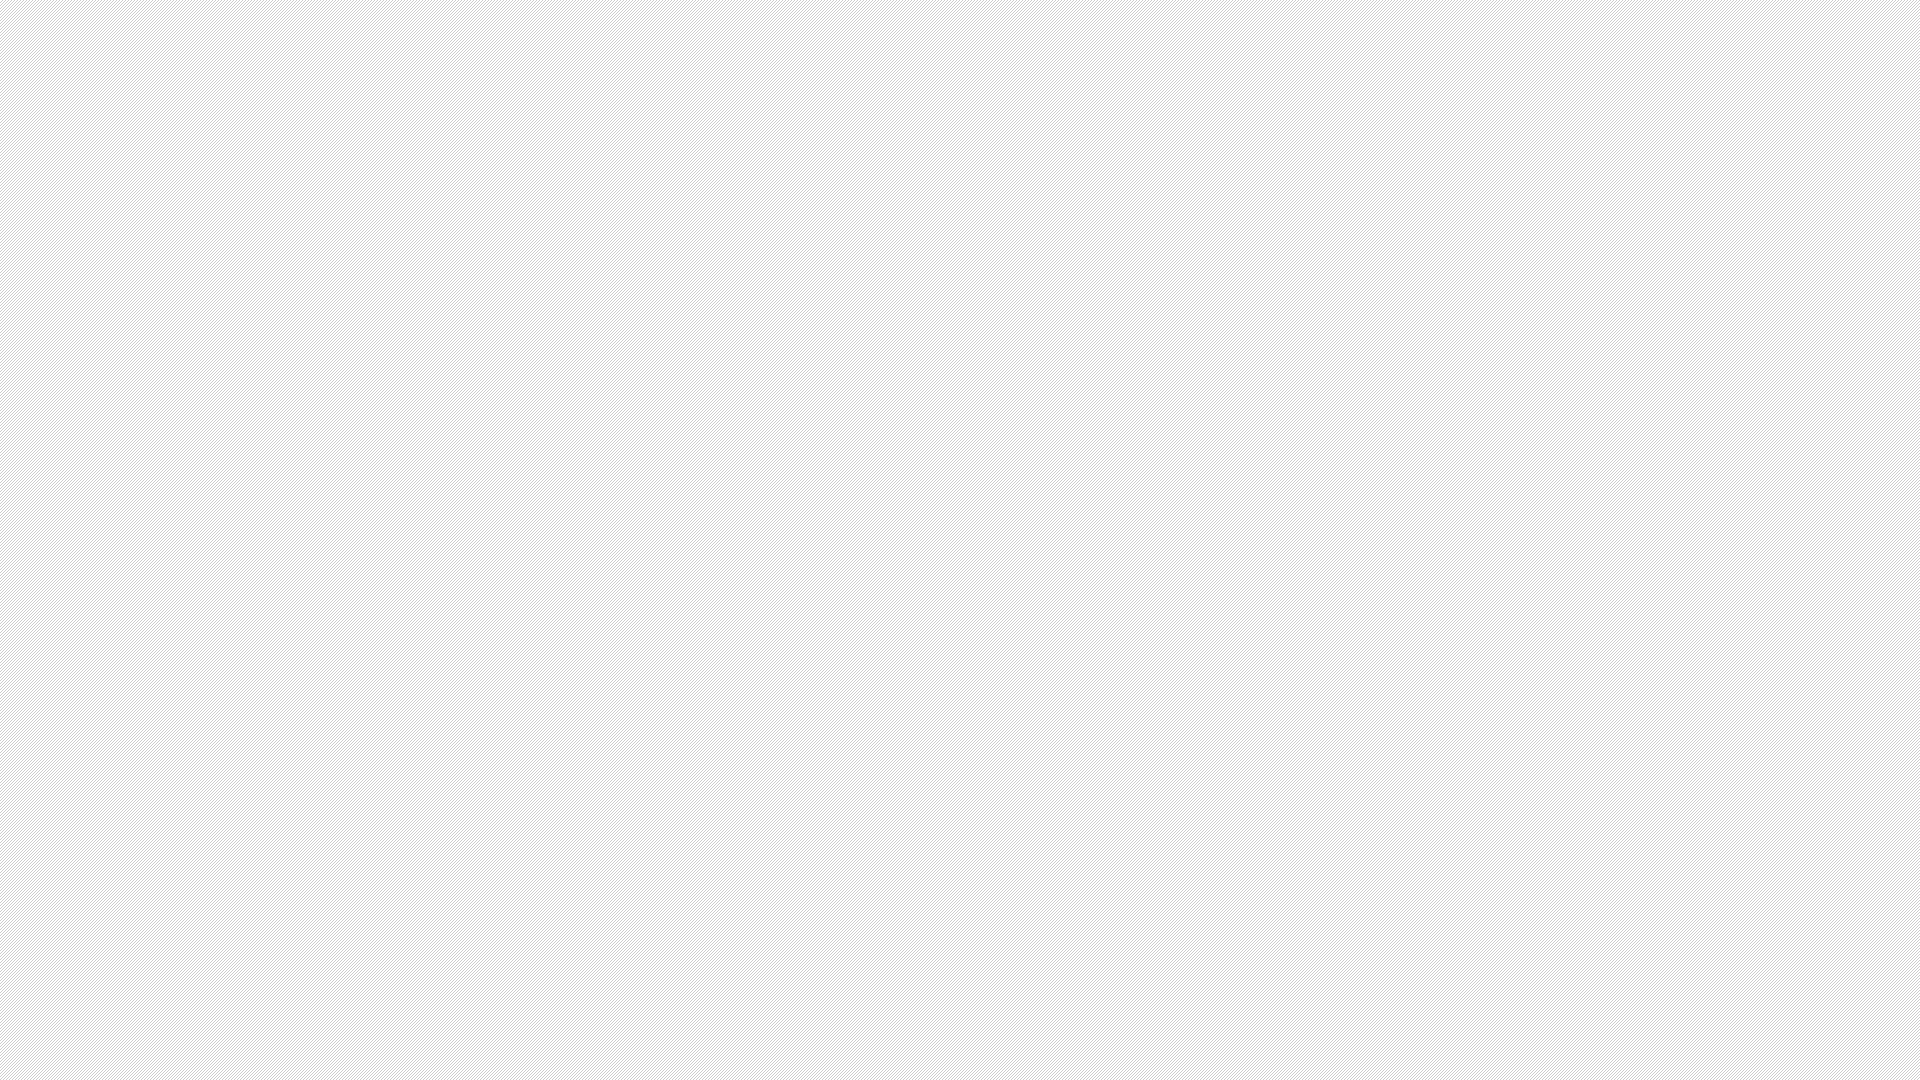 Blank png. Index of wp content